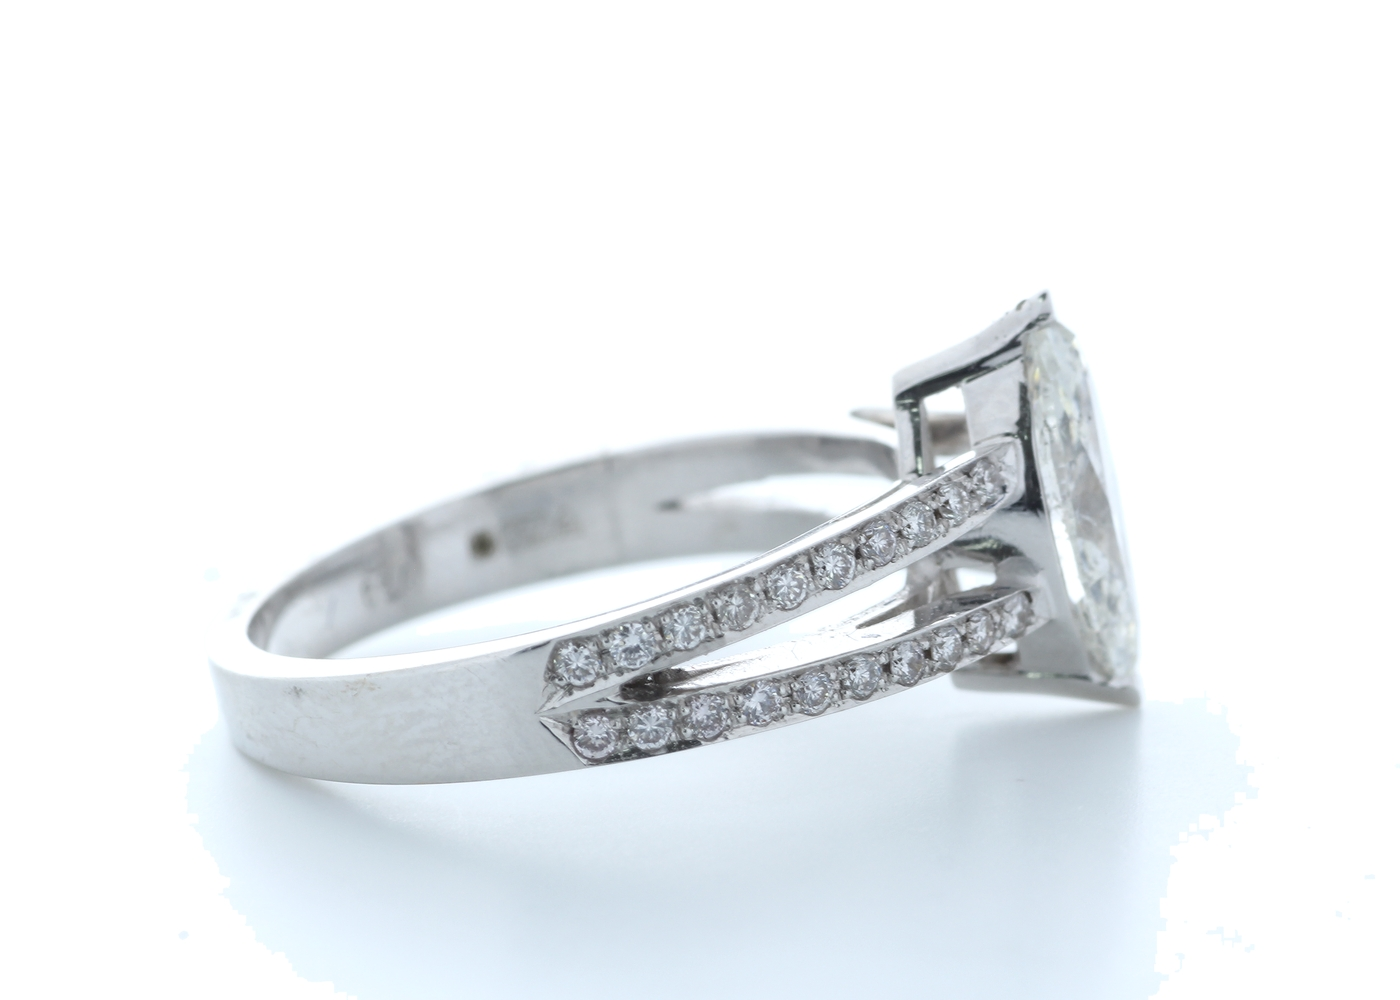 18k White Gold Marquise Cut Diamond Ring 1.41 (1.11) Carats - Image 4 of 5